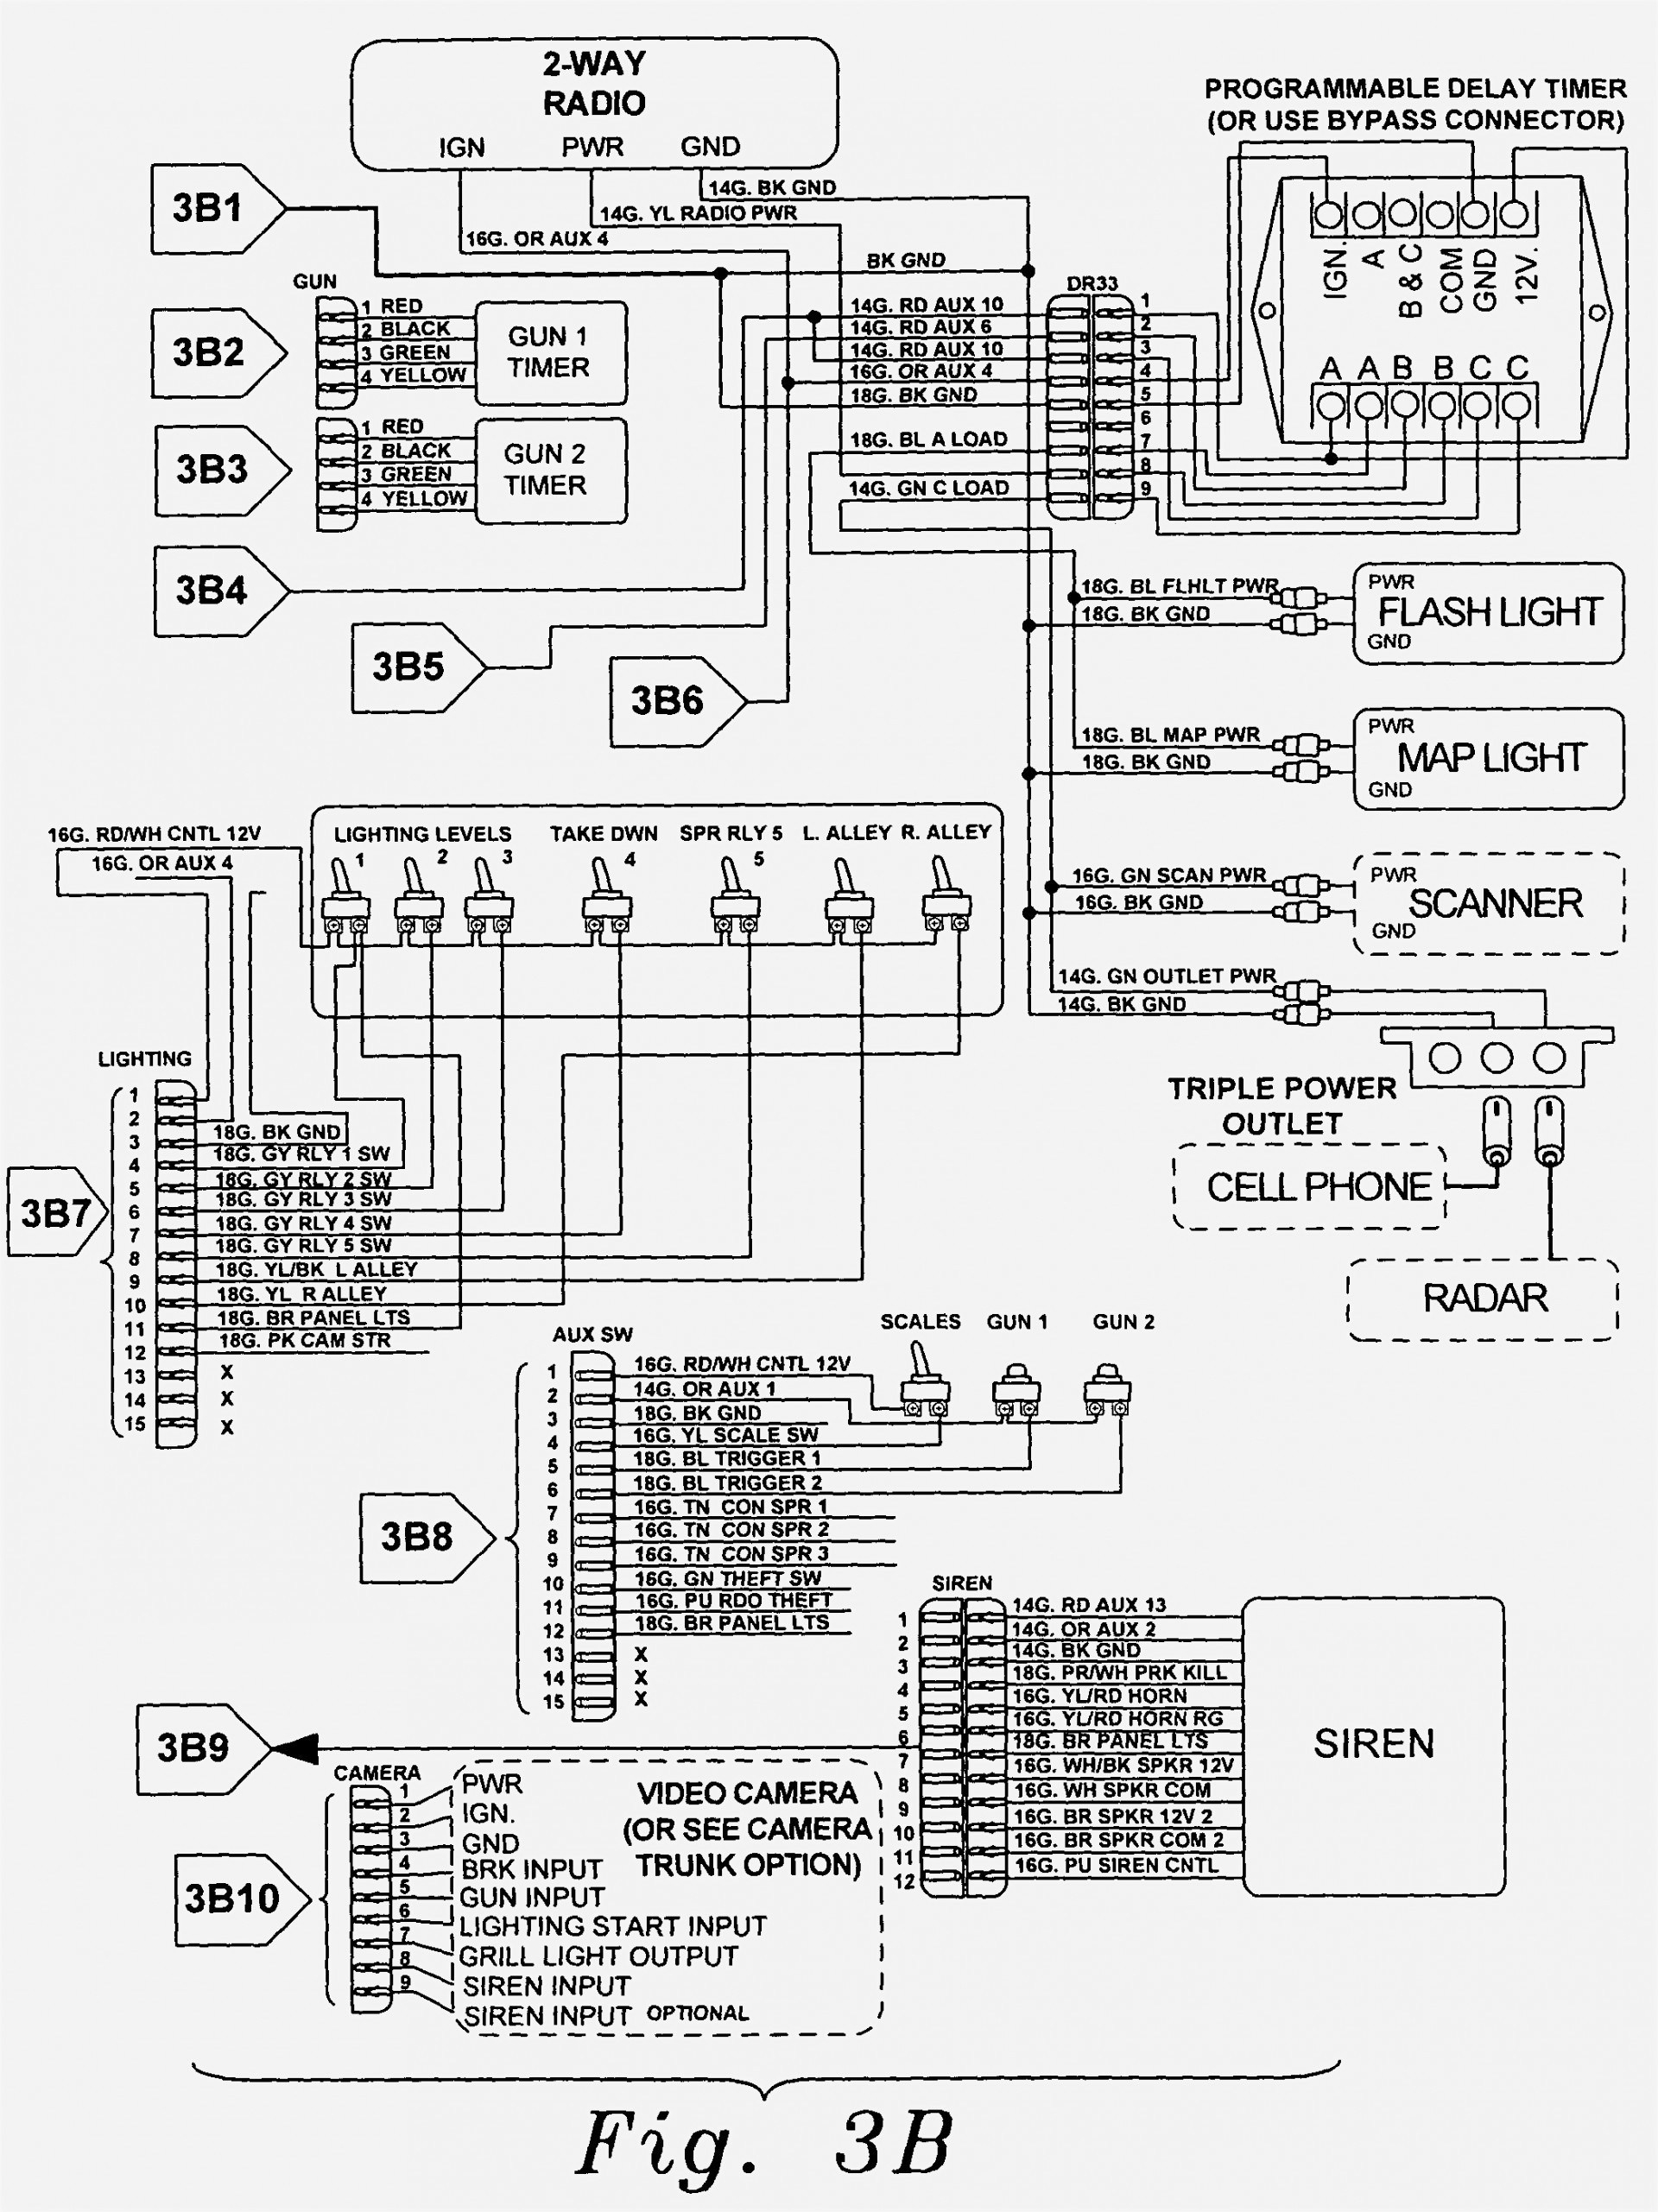 DIAGRAM] Wiring Edge Diagram Whelen Ll288000 FULL Version HD Quality Whelen  Ll288000 - SUCCESSDIAGRAM.GSXBOOKING.ITsuccessdiagram.gsxbooking.it